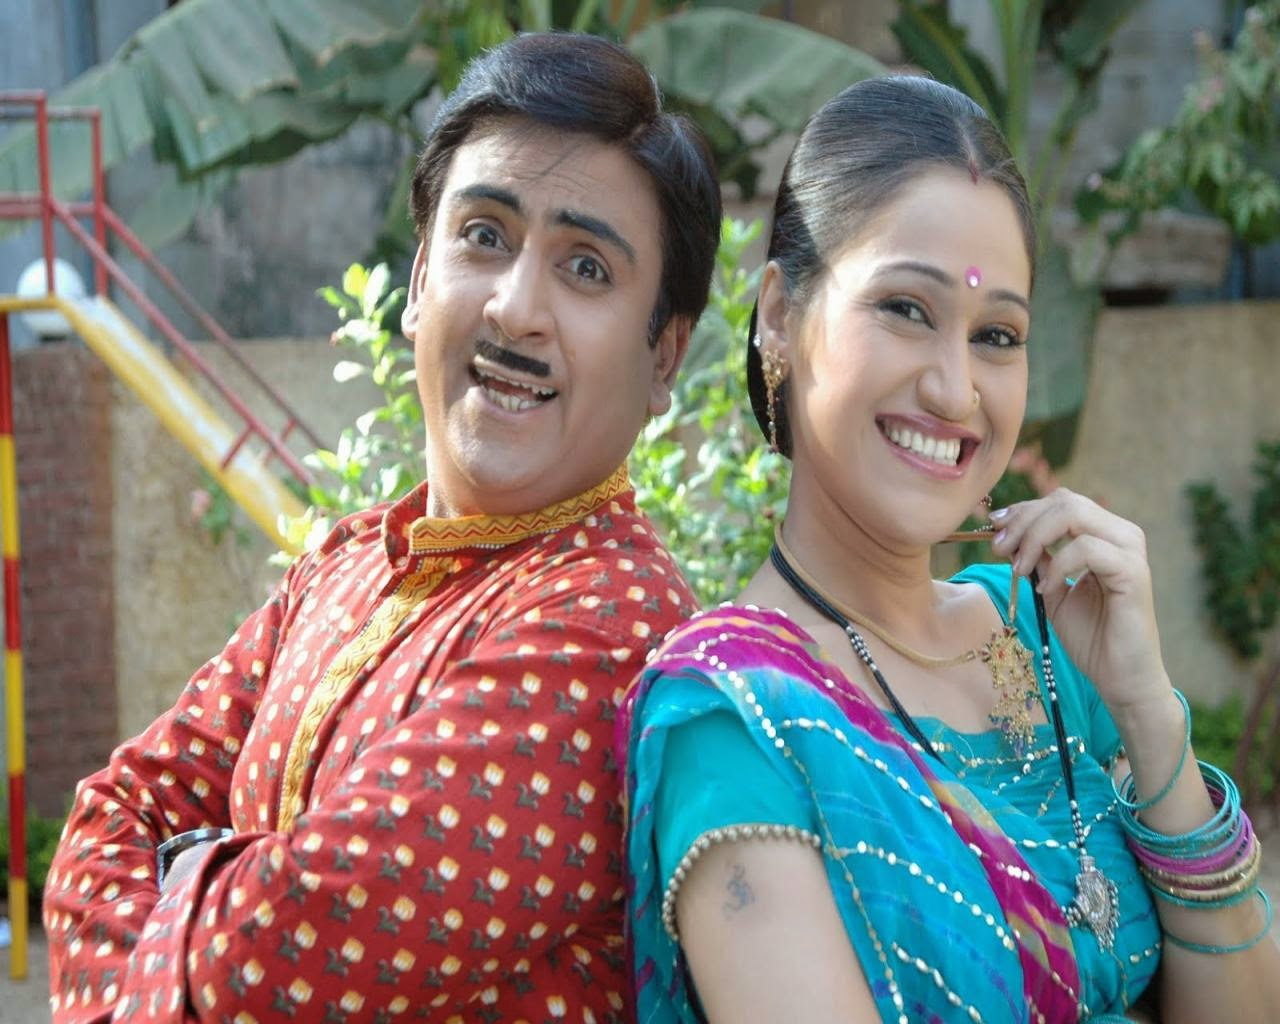 Tarak Maheta Ka Oolta Chasma TV Serial Jethalal And Daya Bhabhi HD Wallpaper